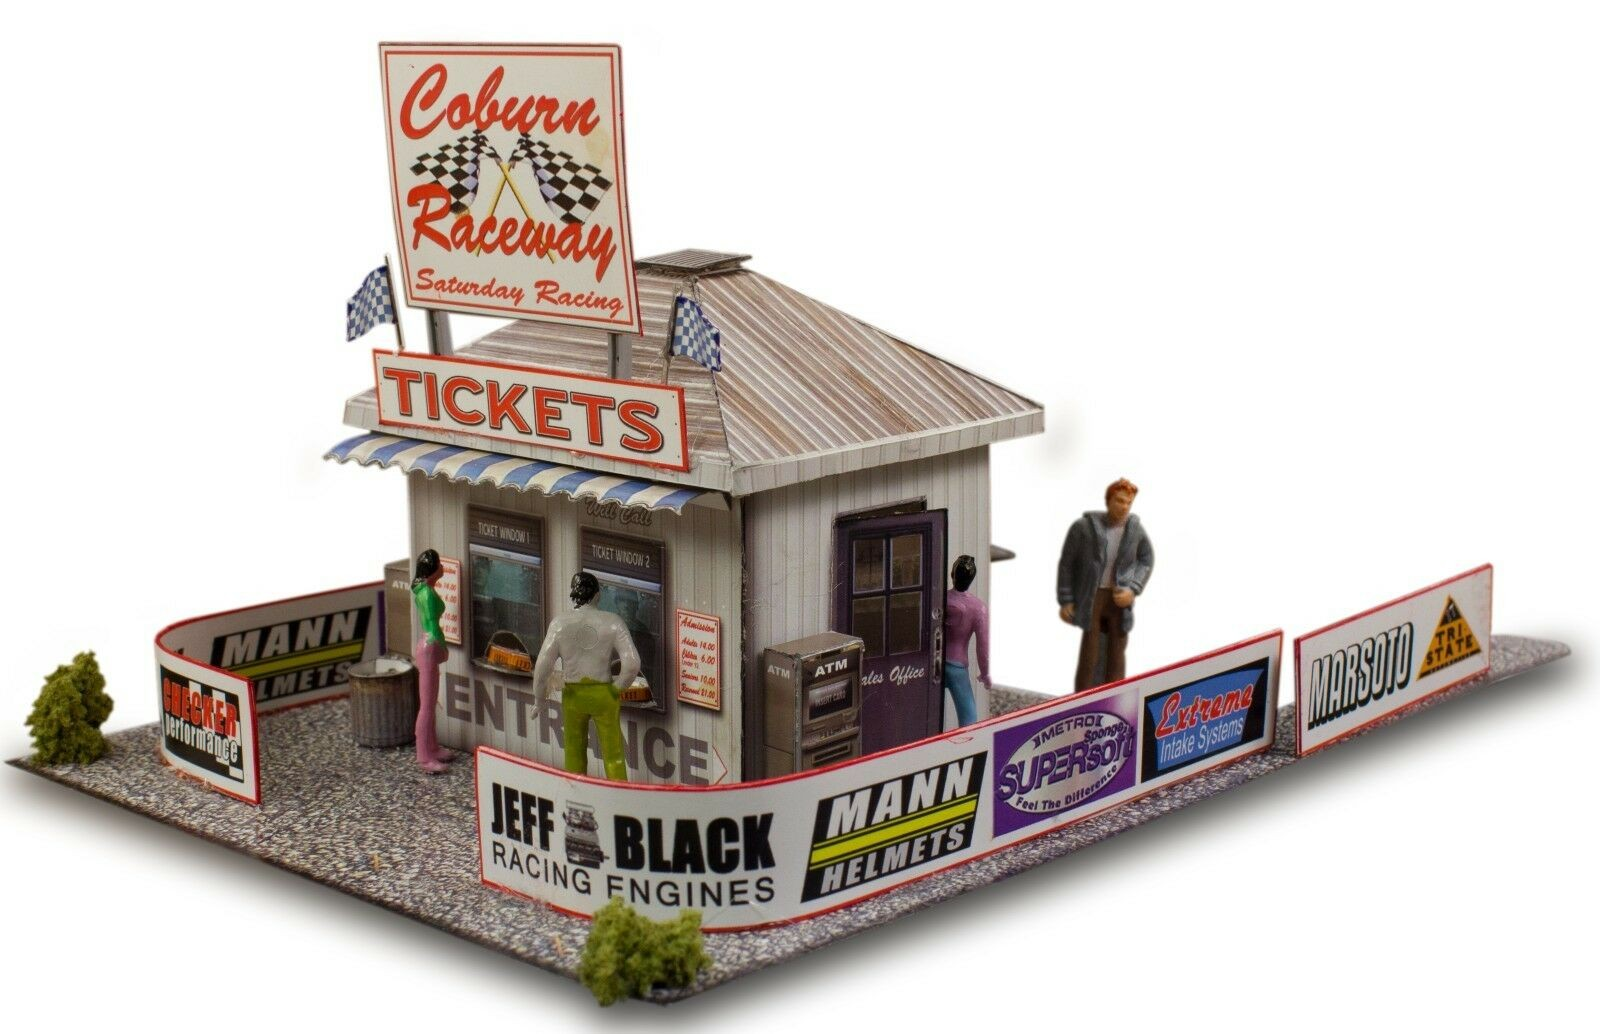 BK 3206 1:32 Scale Ticket & Gate Entrance Model Building Kit